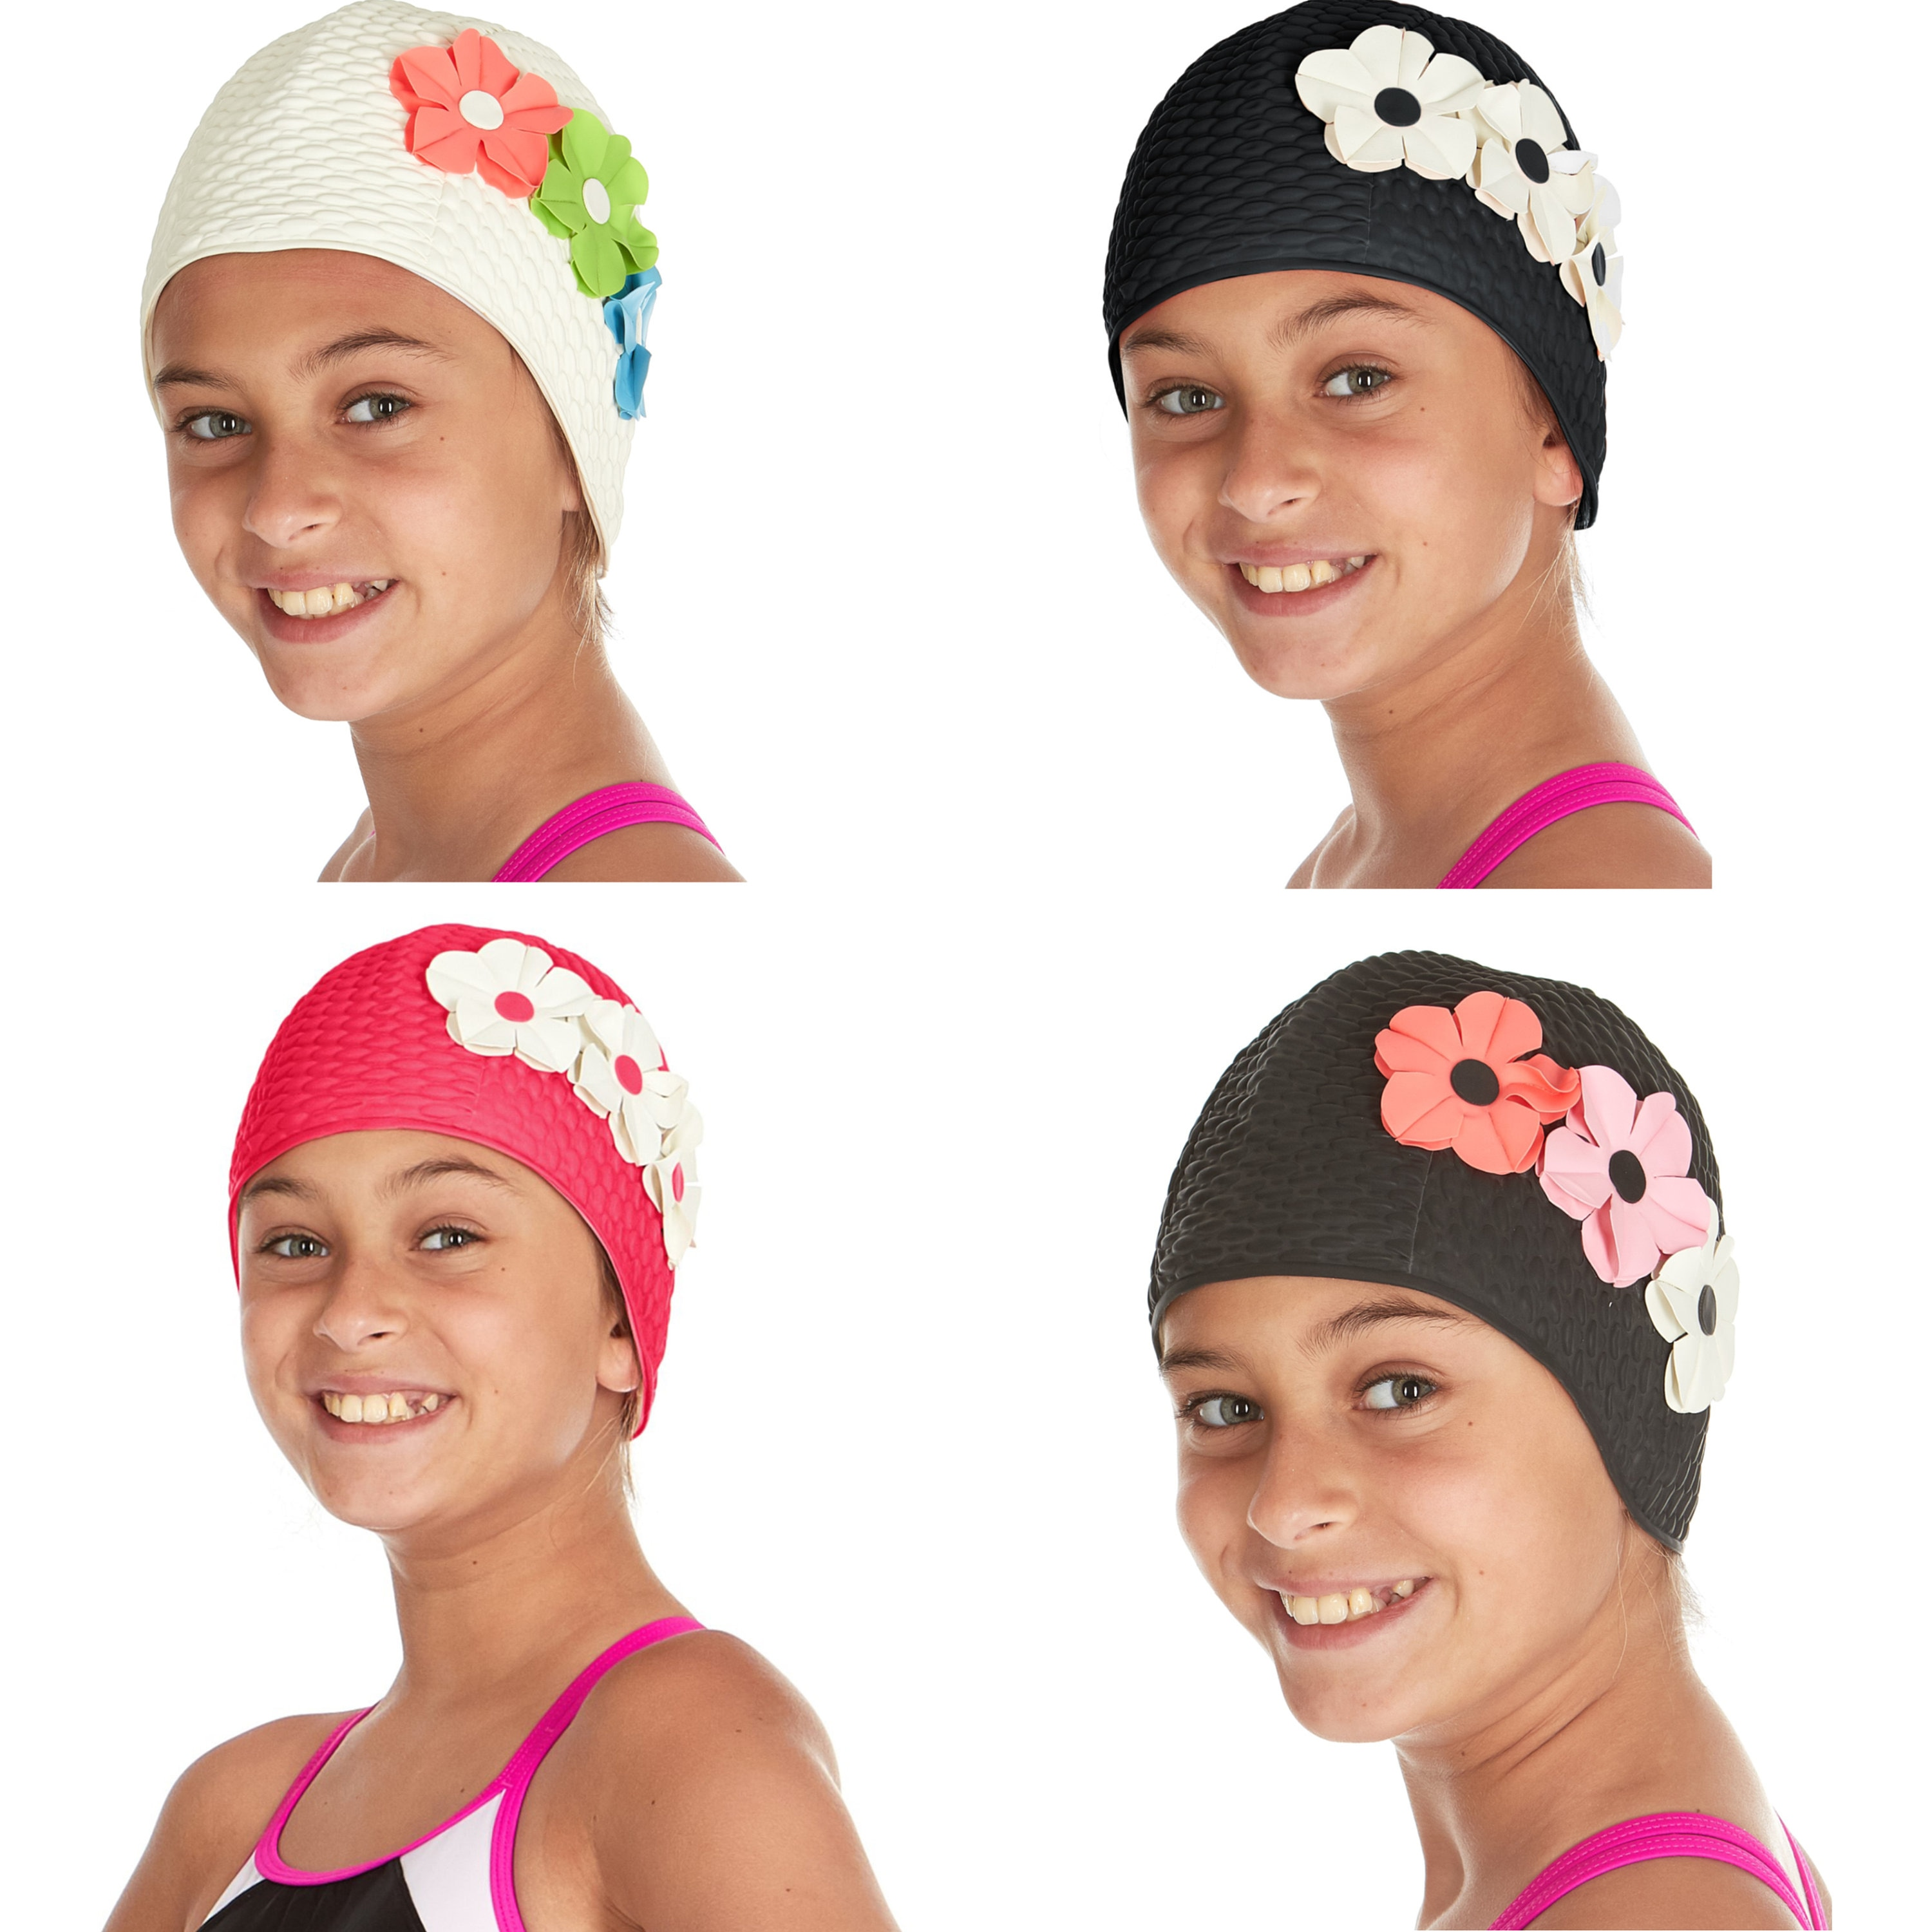 Tea Party Hats – Victorian to 1950s Beemo Kids Girls Swim Bathing Caps Age 7-14 Latex 3 Flowers For LongShort Hair $15.99 AT vintagedancer.com